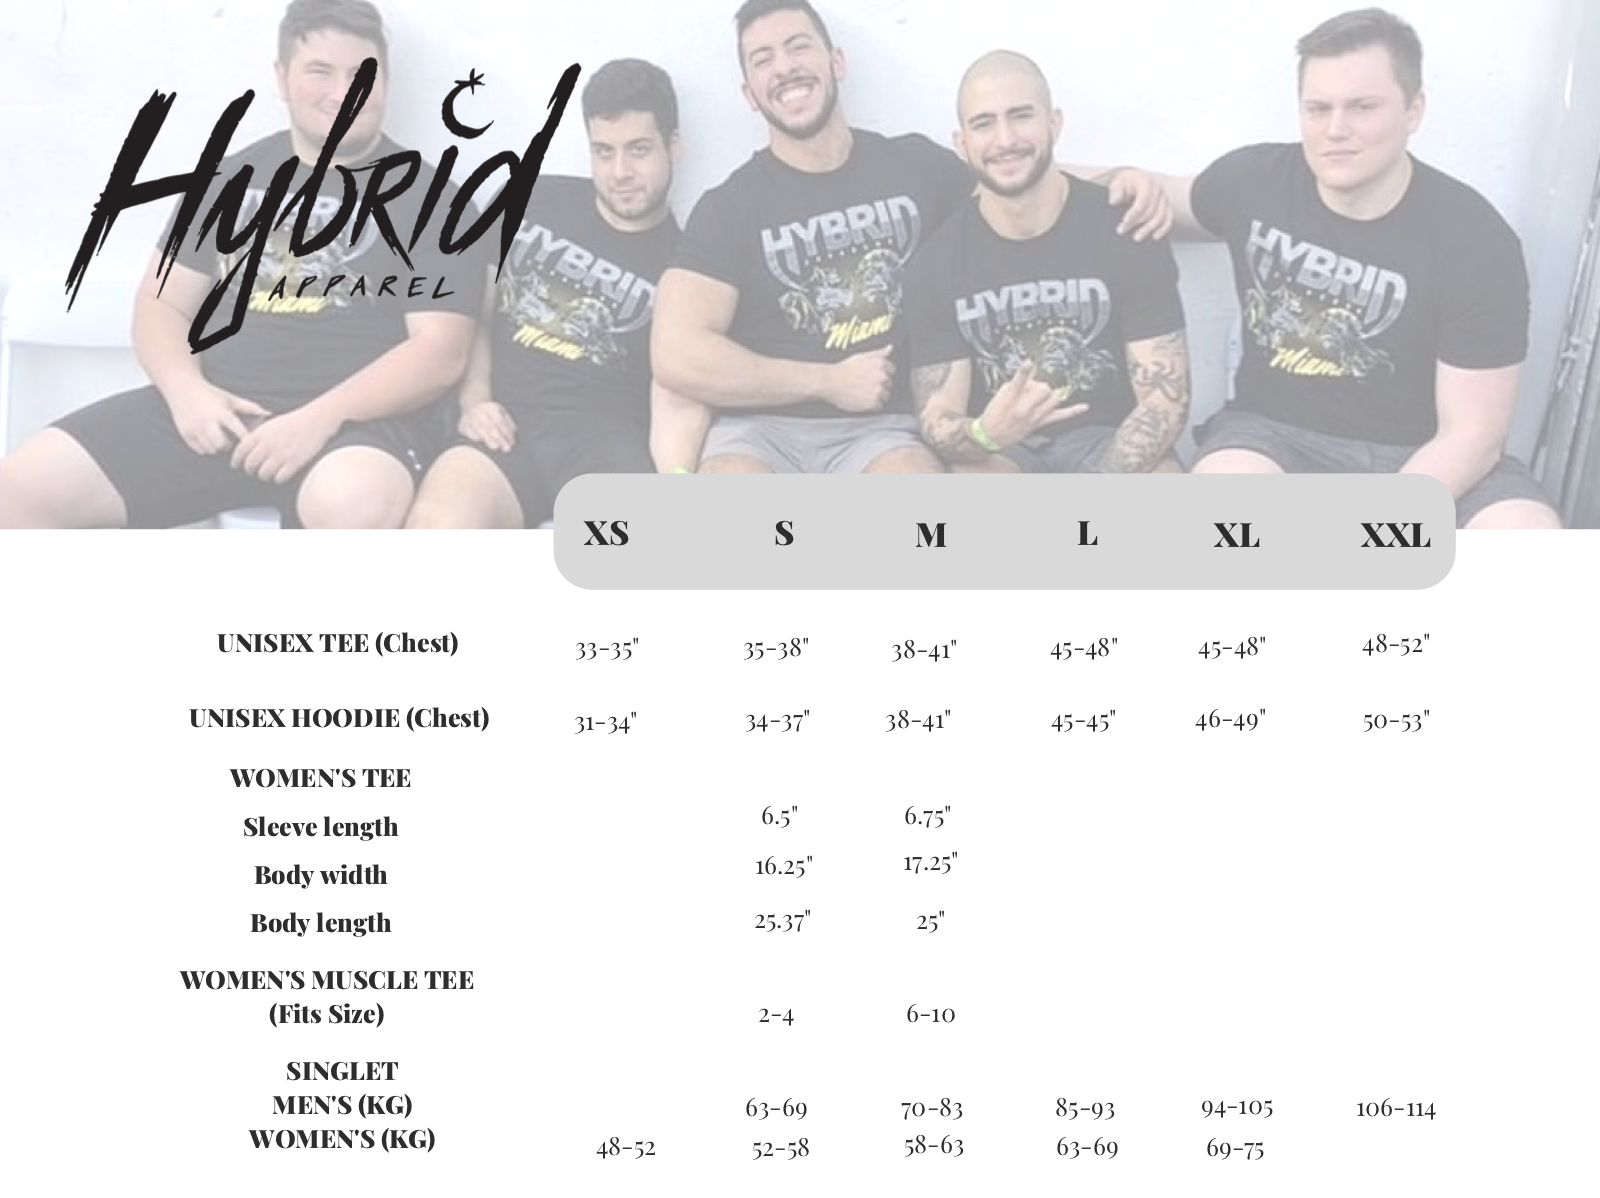 Hybrid Performance Method >> Hybrid Performance Method Singlet